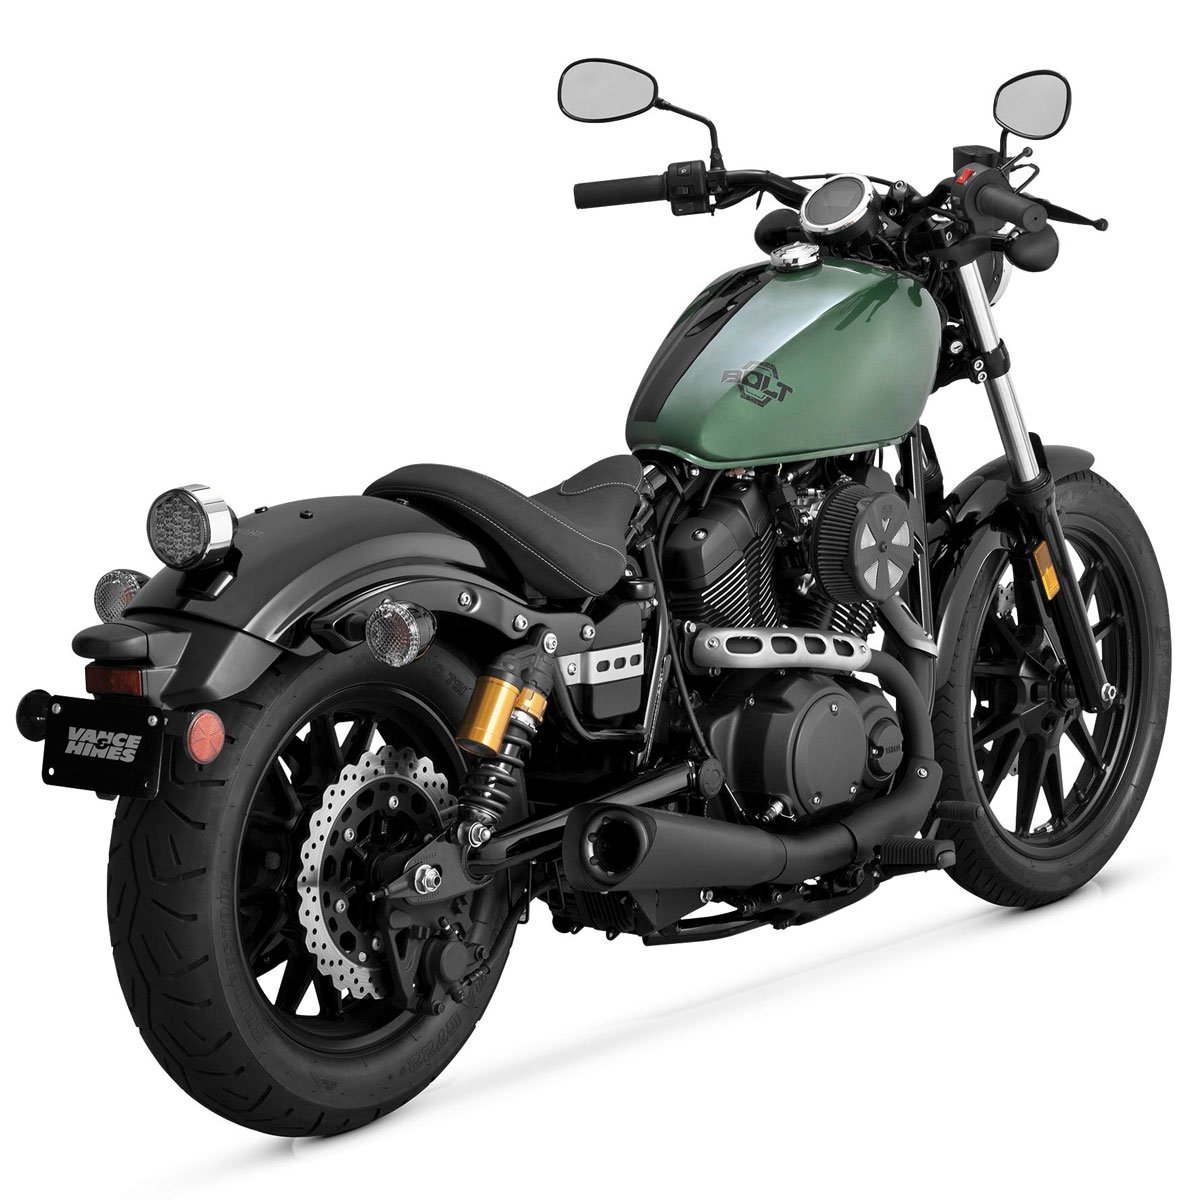 Vance & Hines Competition Series 2-Into-1 Matte Black Slip-On Exhaust for Yam - One Size